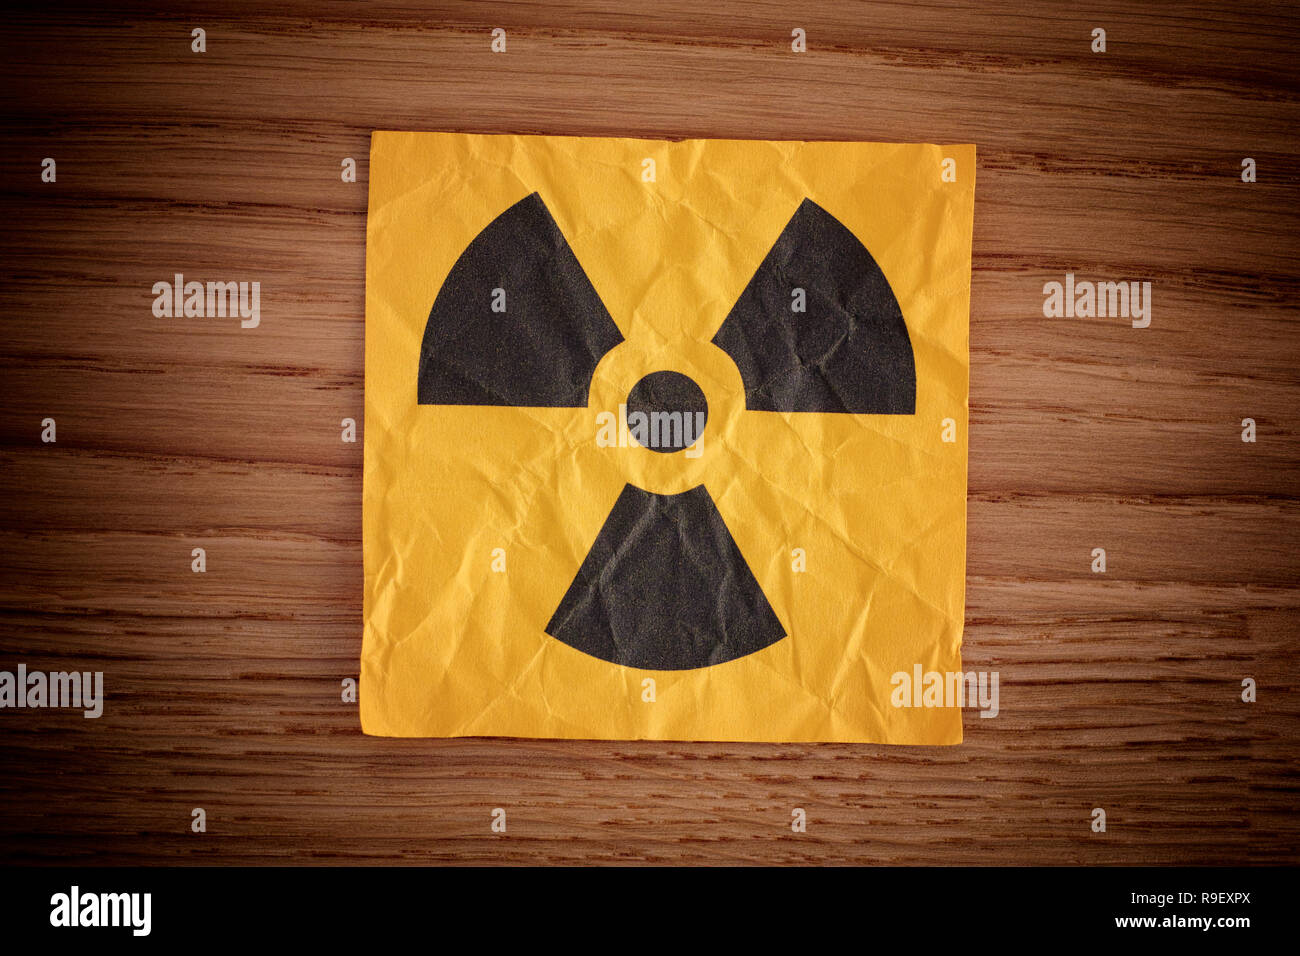 Radiation warning sign on a wooden board. Close up. - Stock Image